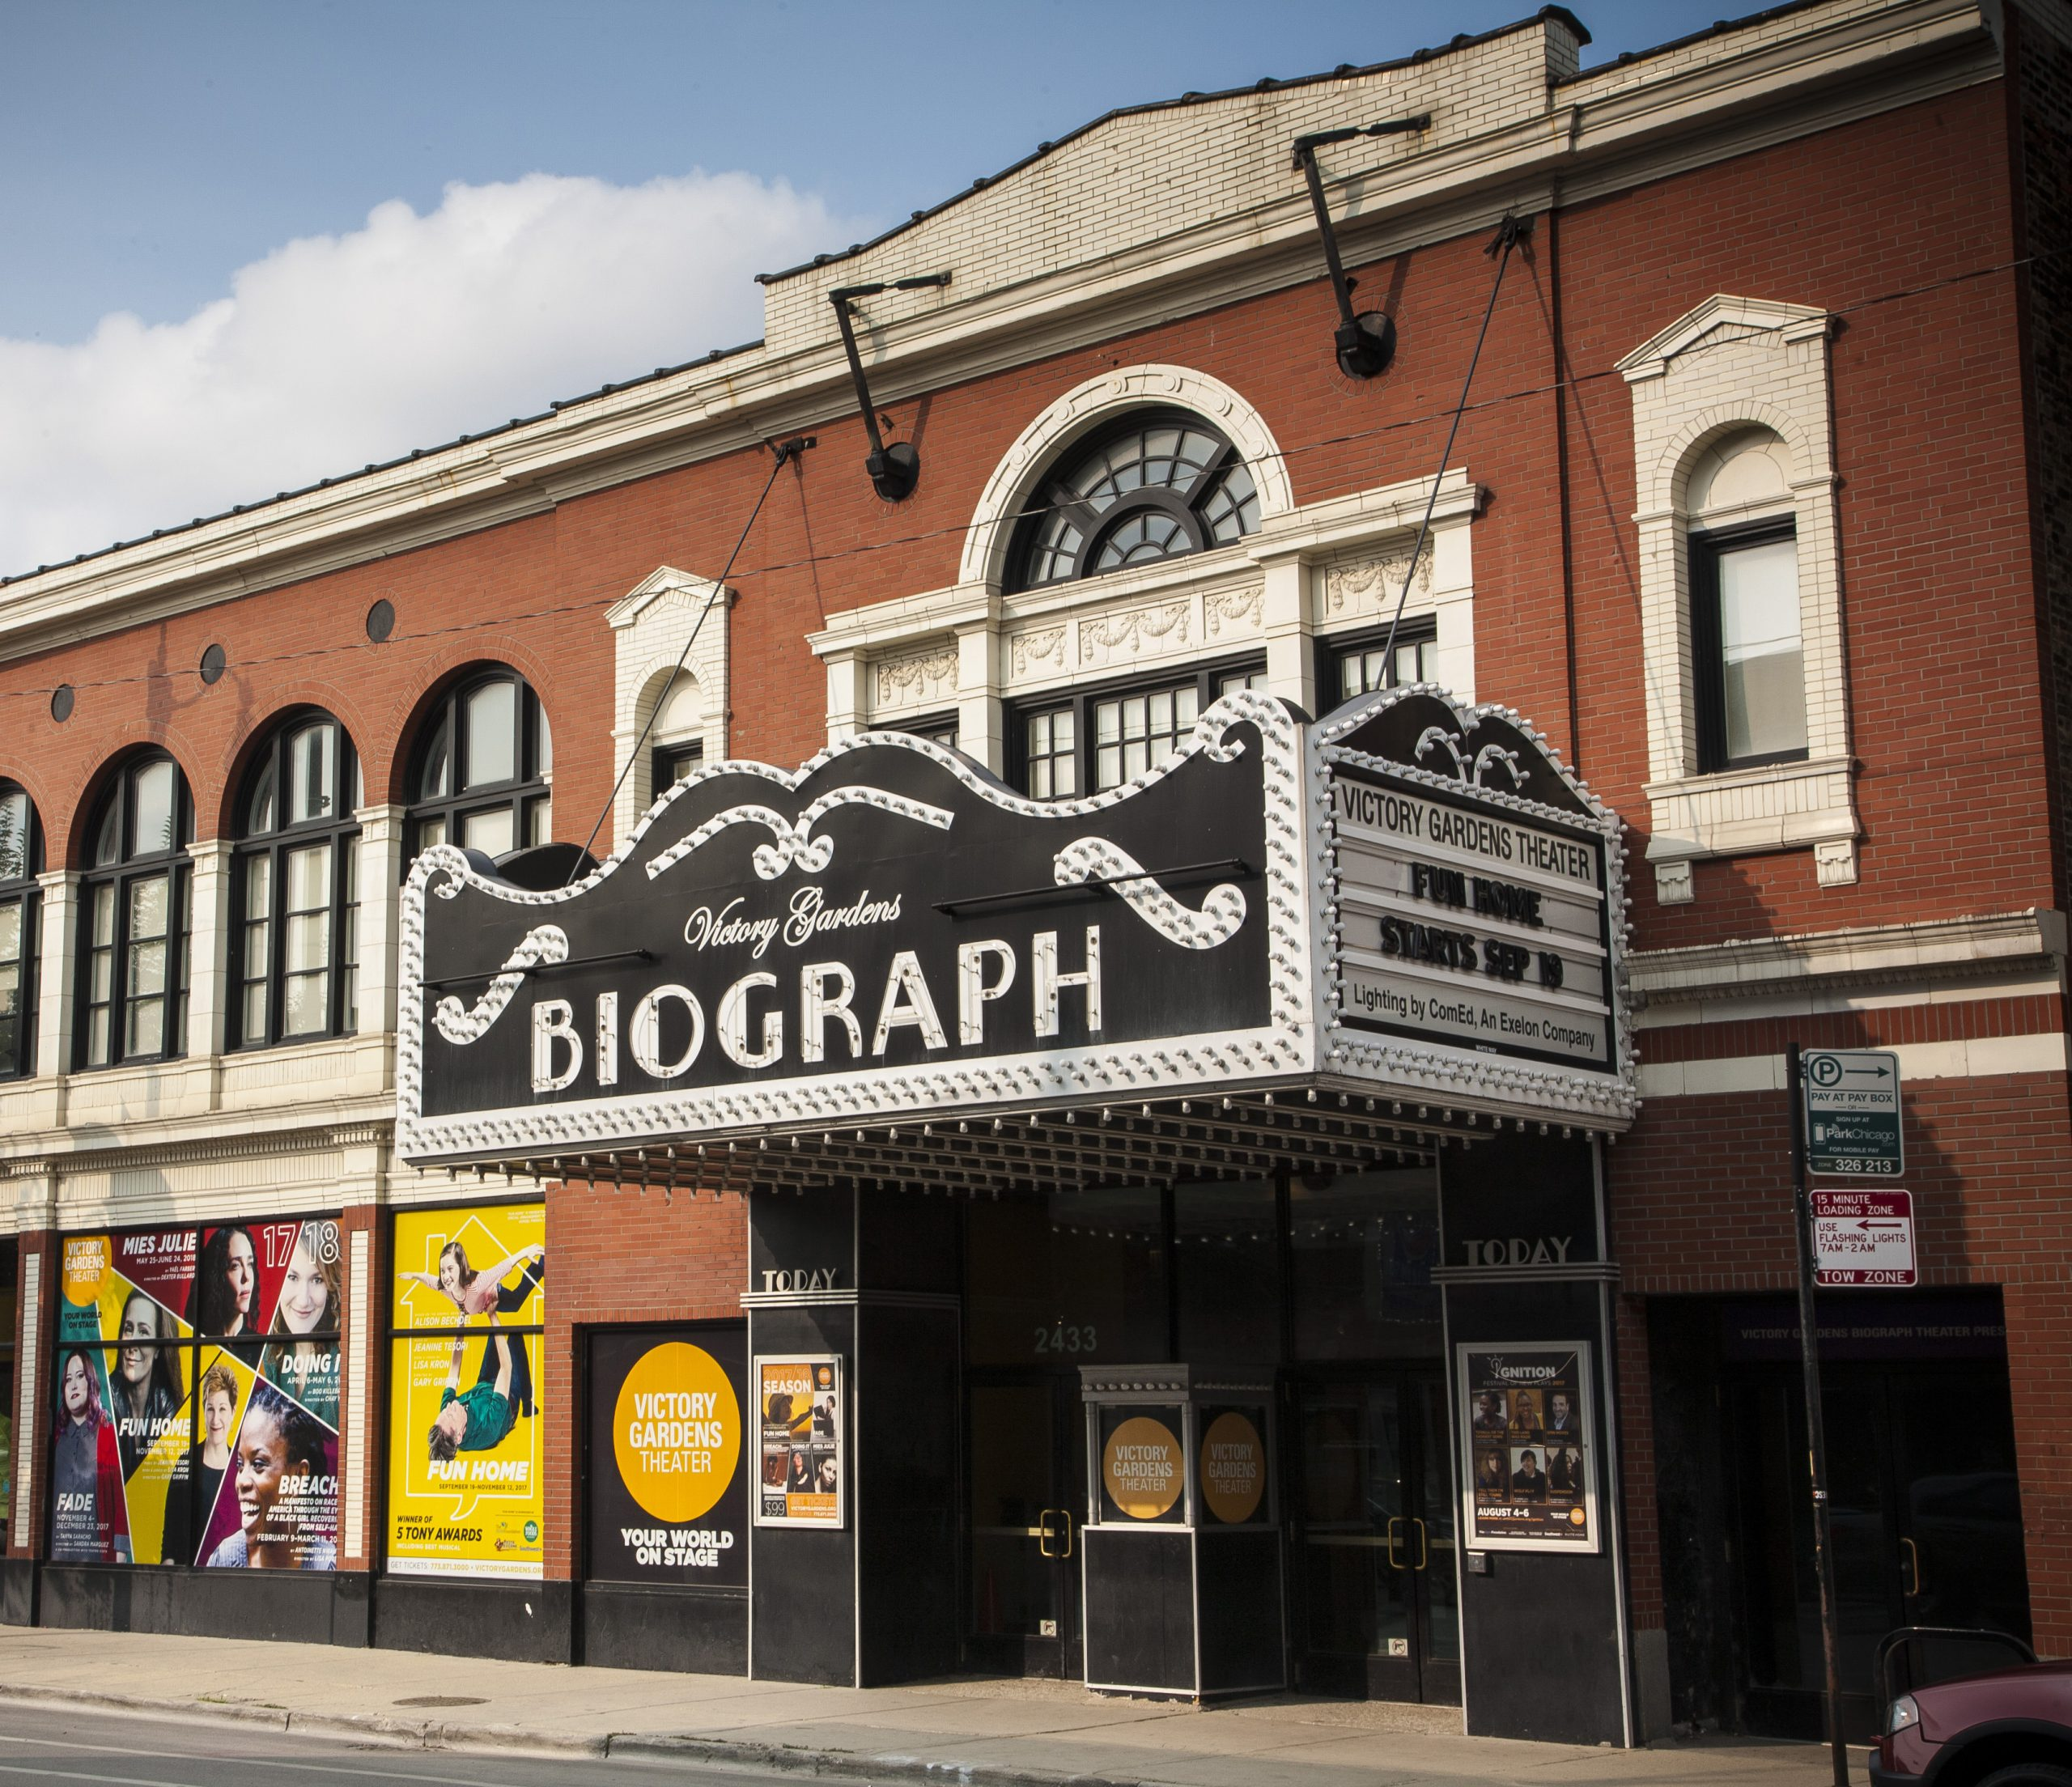 Biograph theater Victory Gardens Lincoln Park Chicago